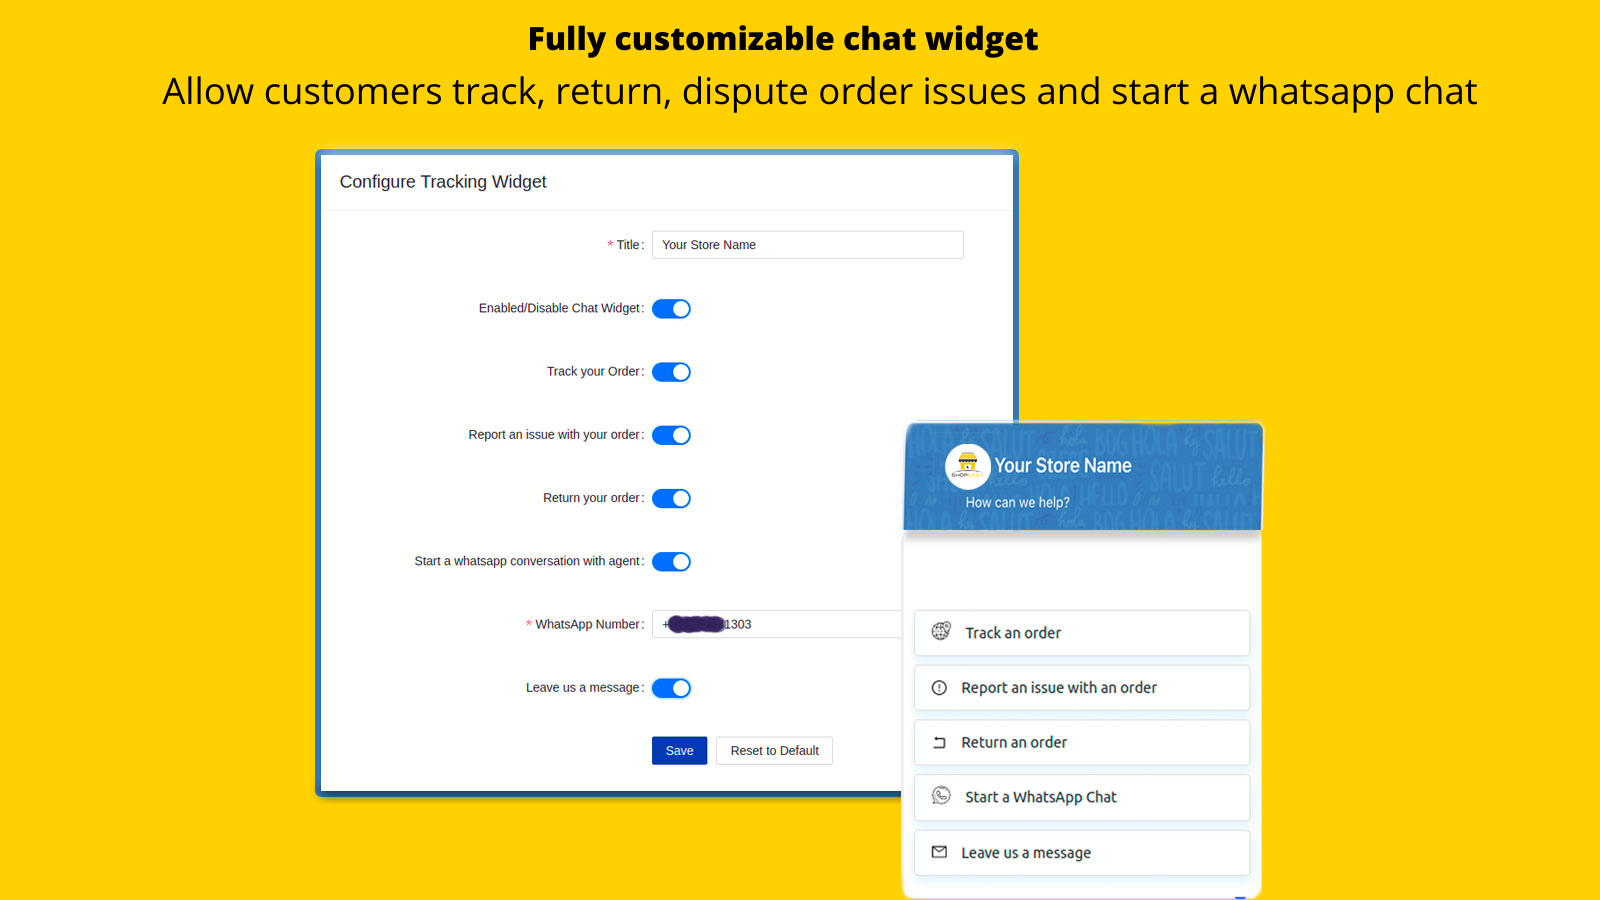 Fully customizable chatbot including whatsapp chat